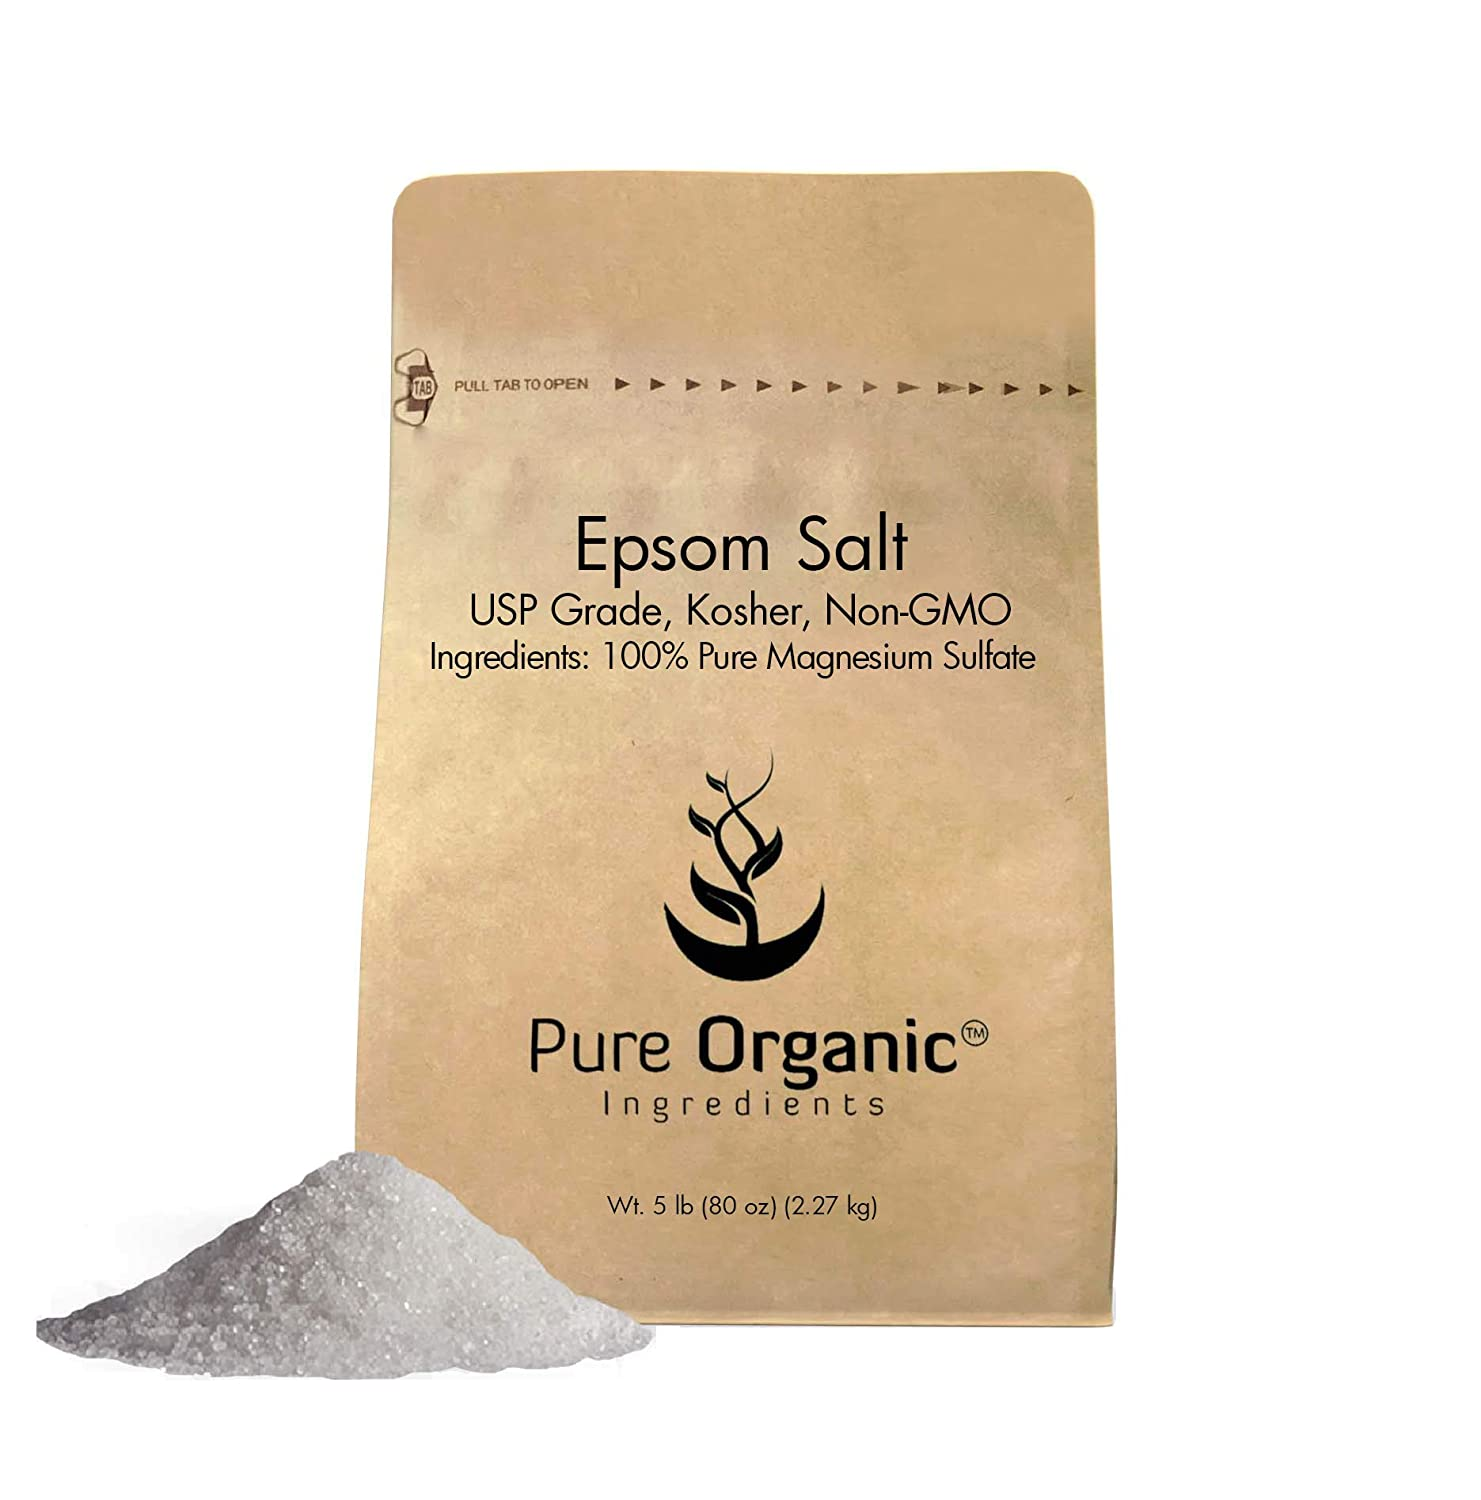 Pure Epsom Salt (Magnesium Sulfate), 1 lb (16 oz), Soaking Solution, All-Natural, Highest Quality & Purity, USP Grade, Eco-Friendly Packaging (Also available in 4 oz & 5 lb) Pure Organic Ingredients